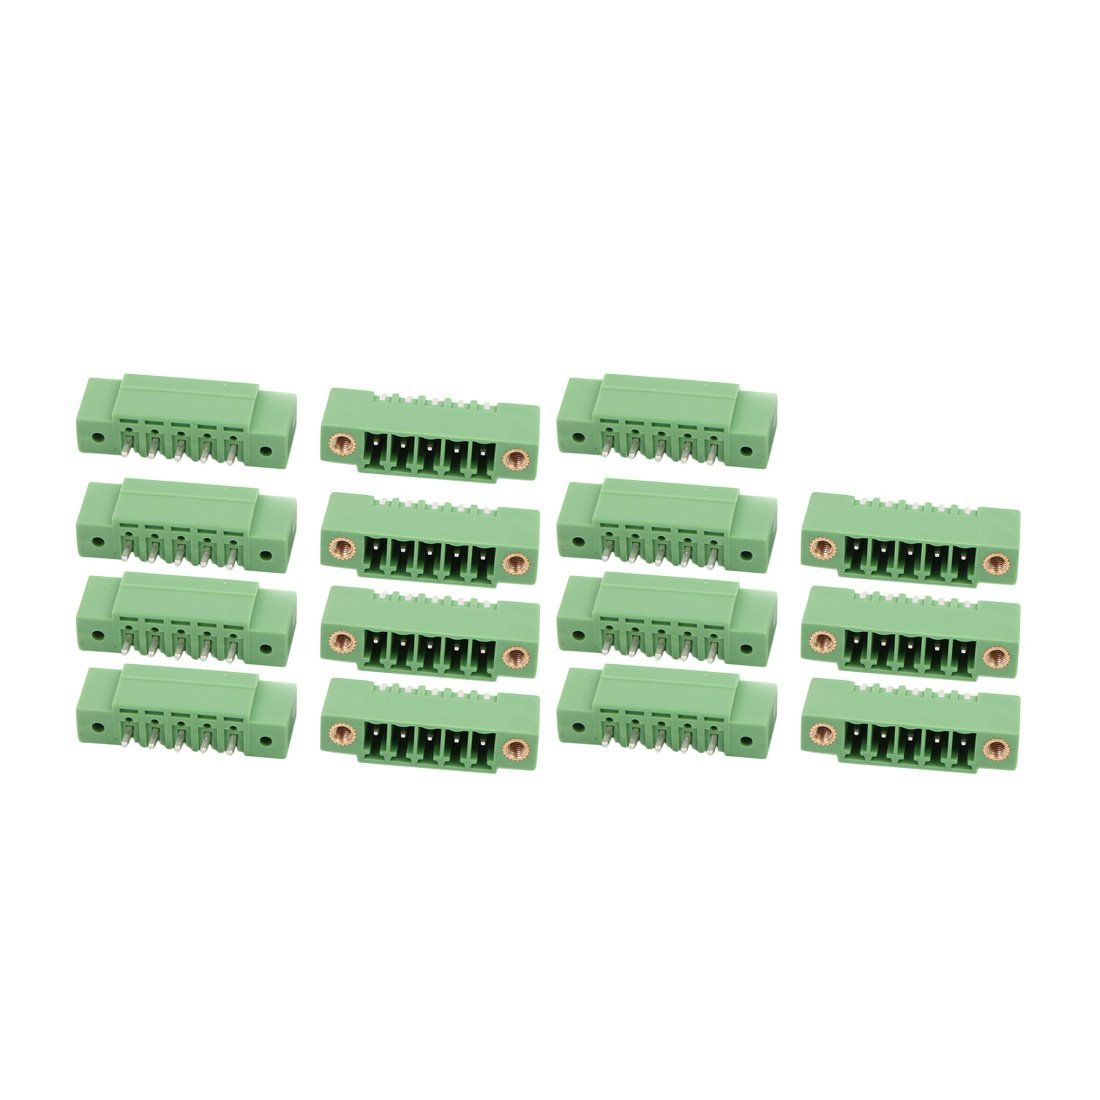 uxcell 15 Pcs LZ1VM AC300V 8A 3.5mm Pitch 5P PCB Mount Terminal Block Wire Connector